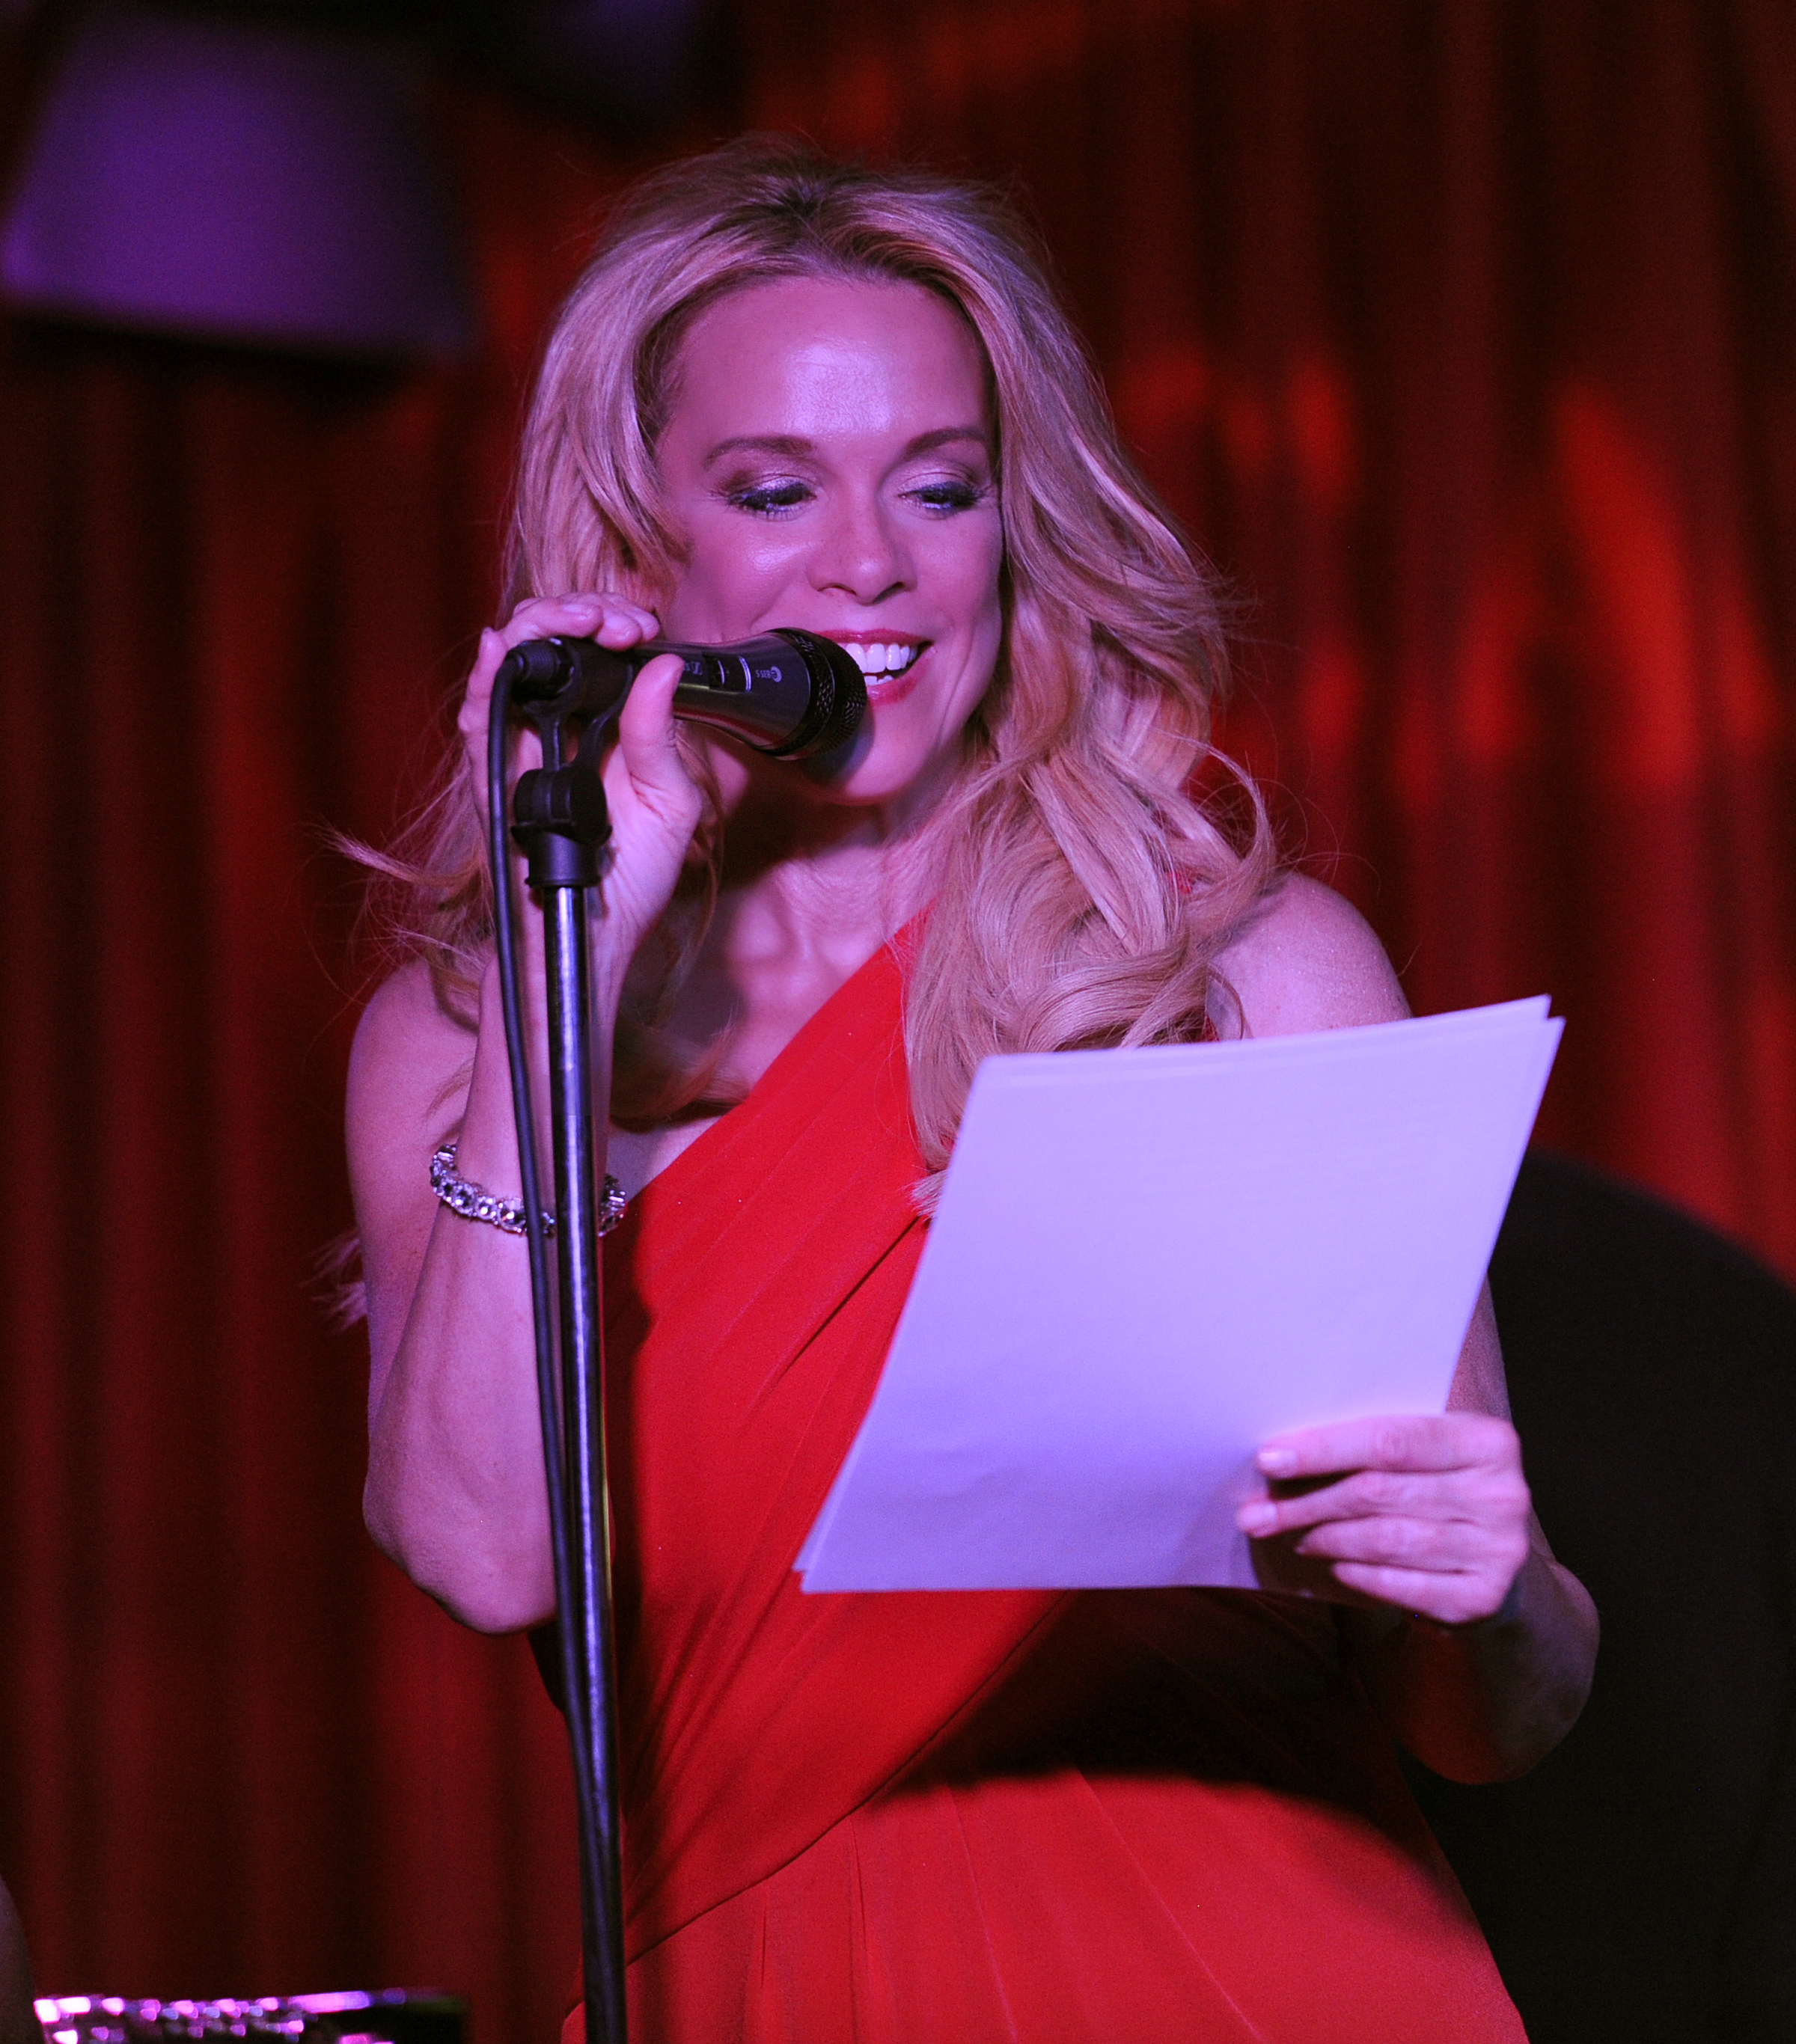 Emcee Chase Masterson at Kaylene Peoples's and Bunny Brunel's cd Release Concert